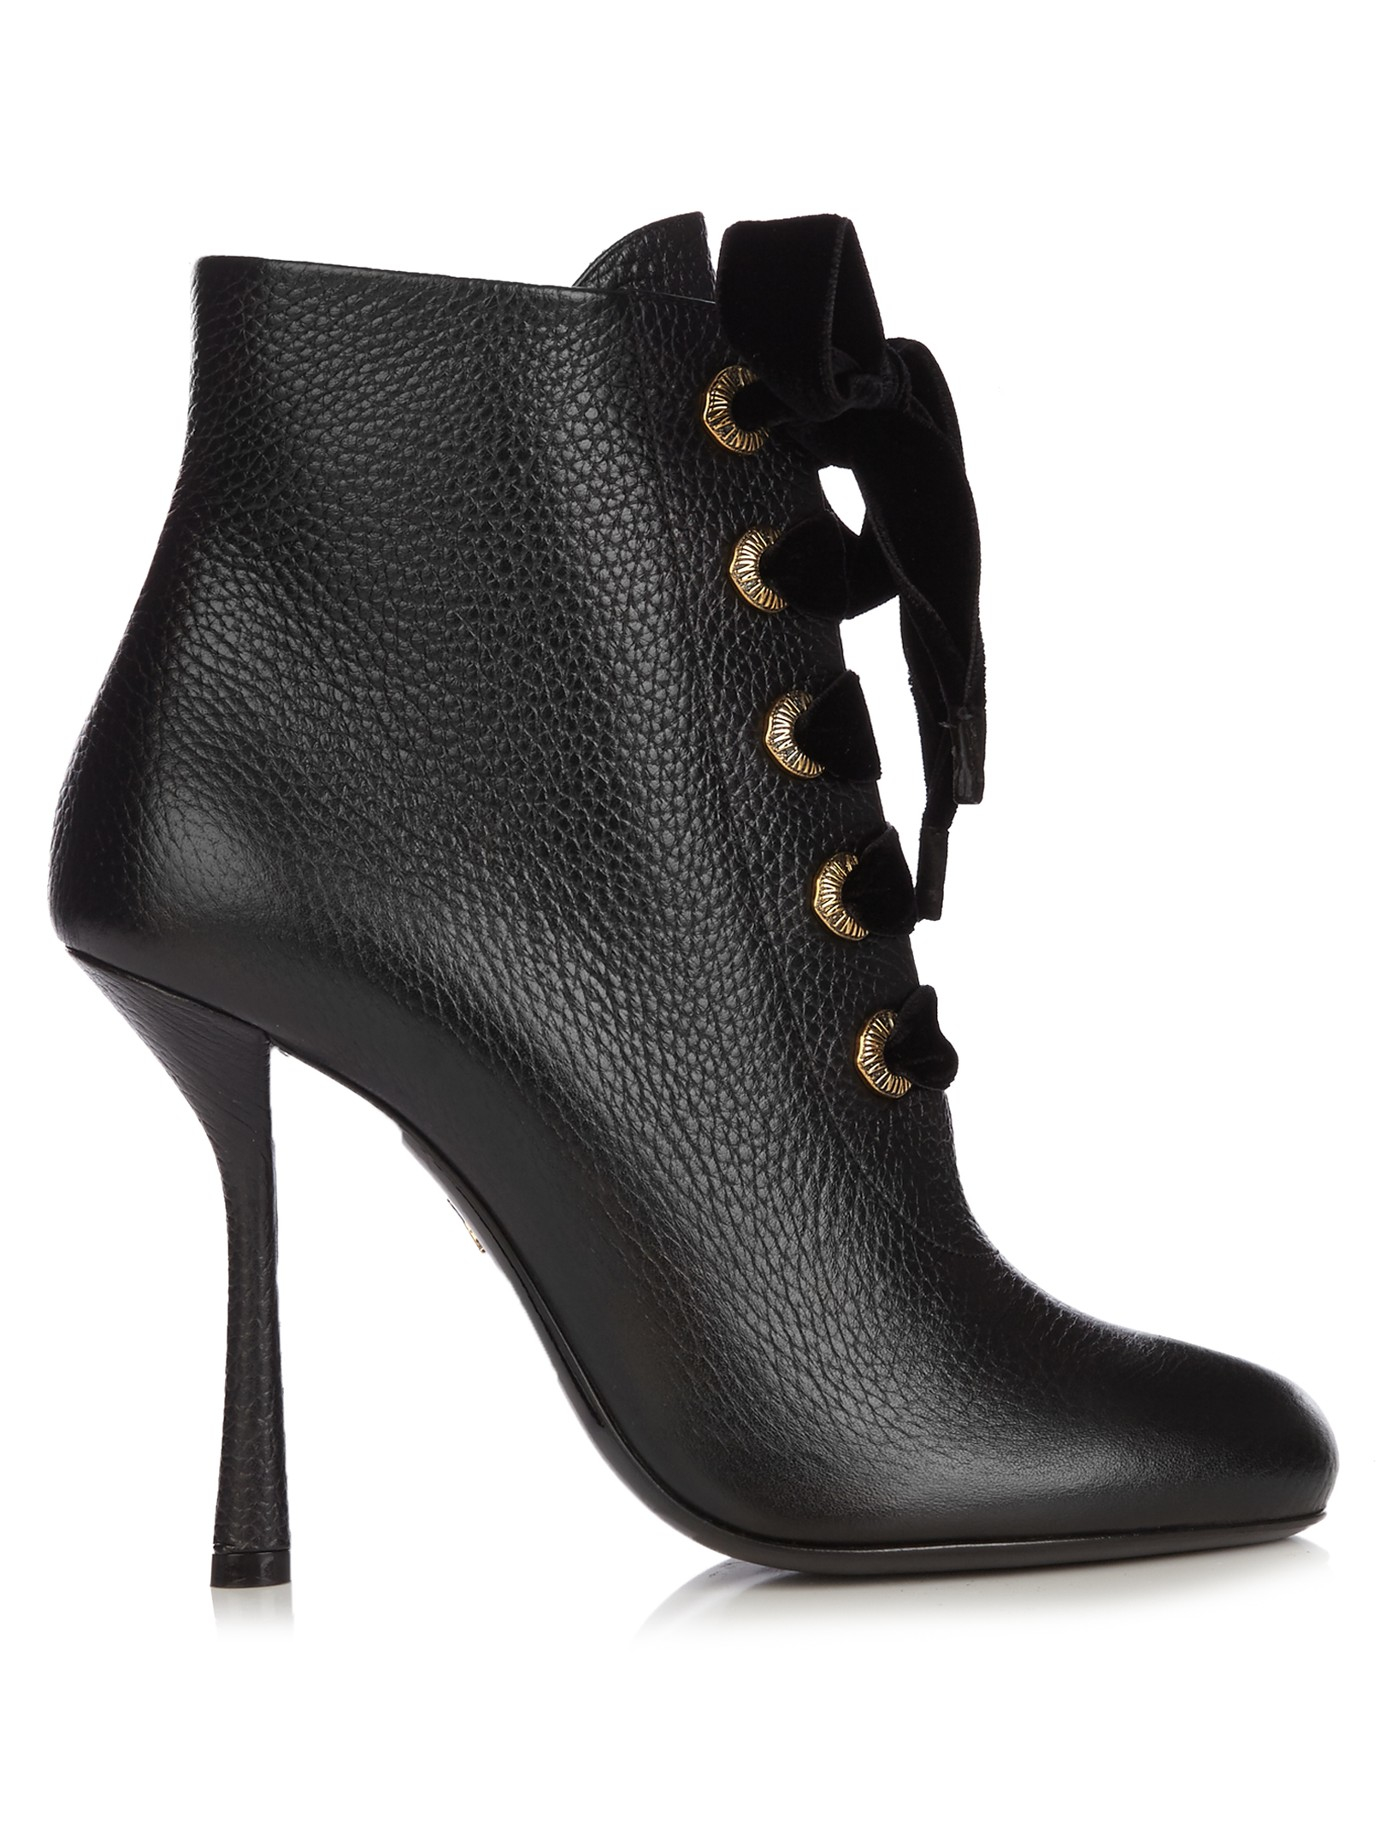 Lanvin Velvet Lace Leather Ankle Boots in Black